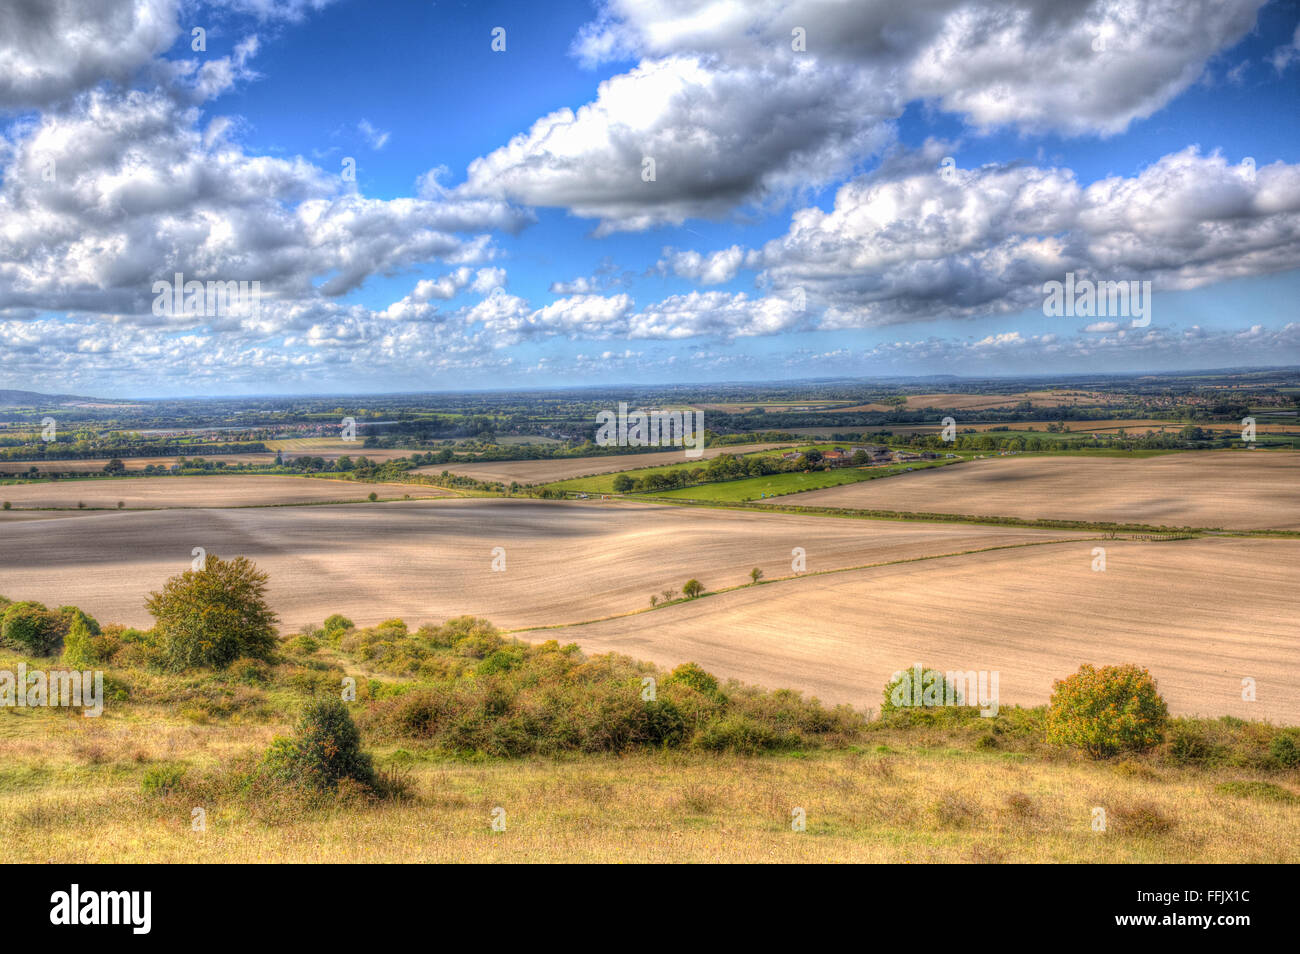 View from Ivinghoe Beacon Chilterns Hills Buckinghamshire England UK English countryside between Dunstable Bedfordshire - Stock Image